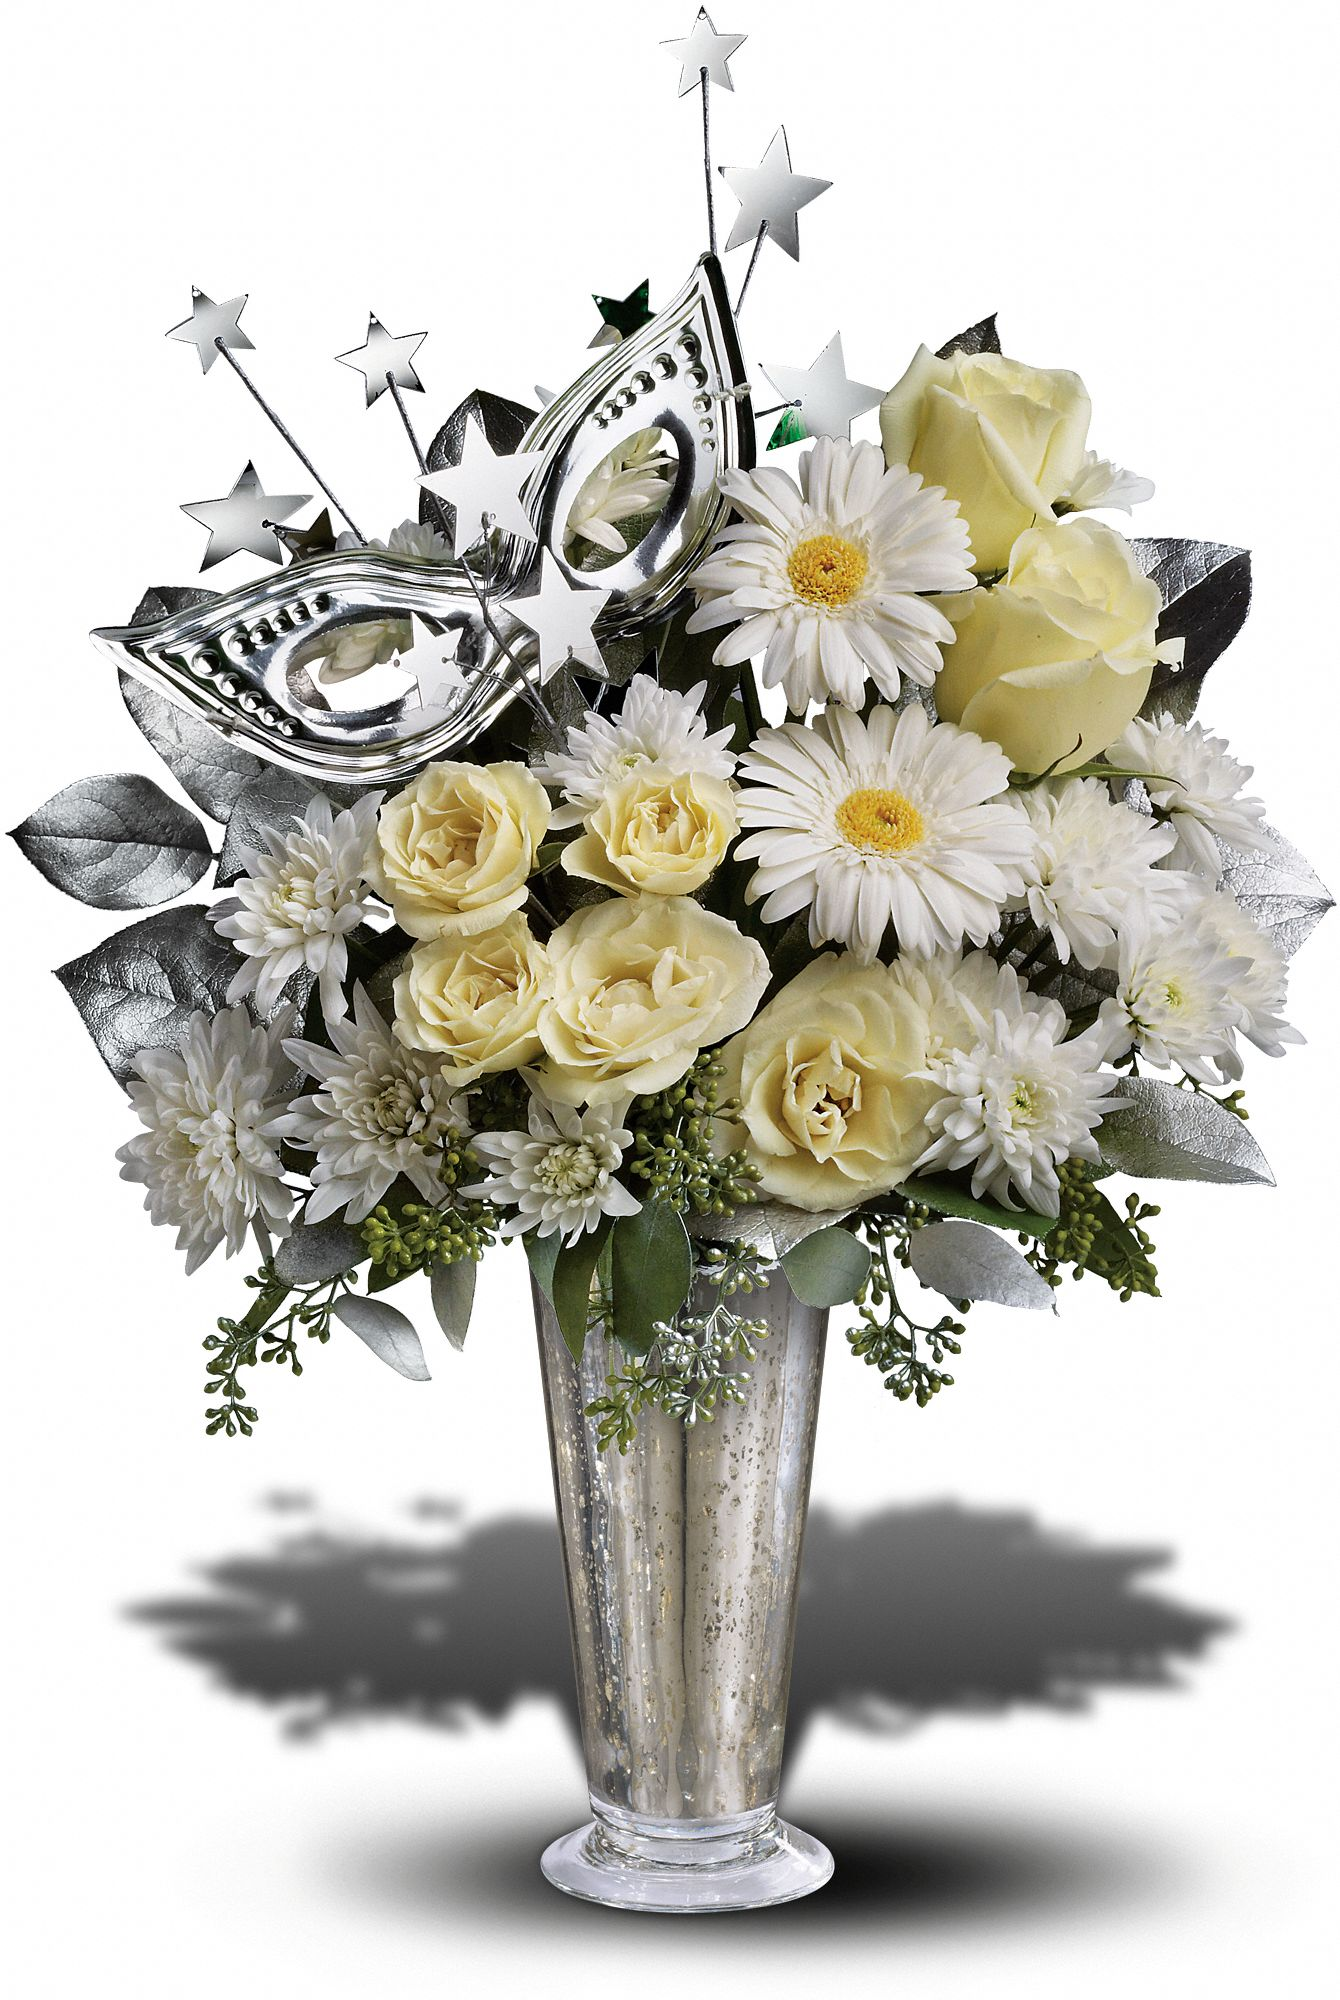 New Year Flowers That Will Make Your Celebration Sparkle